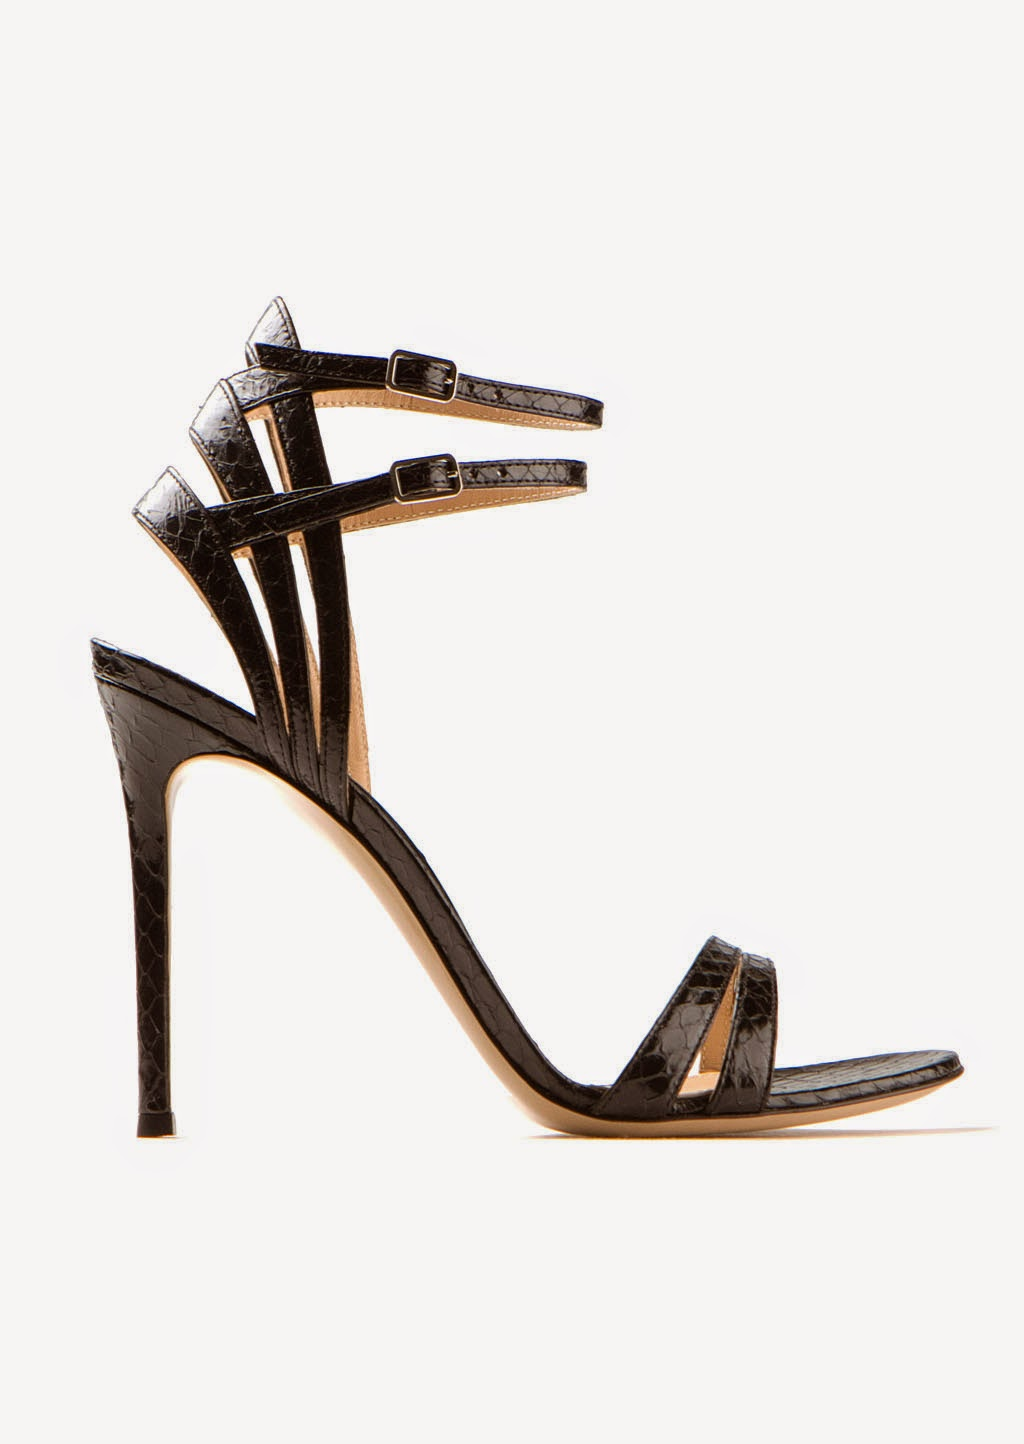 https://www.montaignemarket.com/EN_14035_Shoes_Sandals_Gianvito-Rossi_Gianvito-Rossi-black-python-high-heels-sandals.html